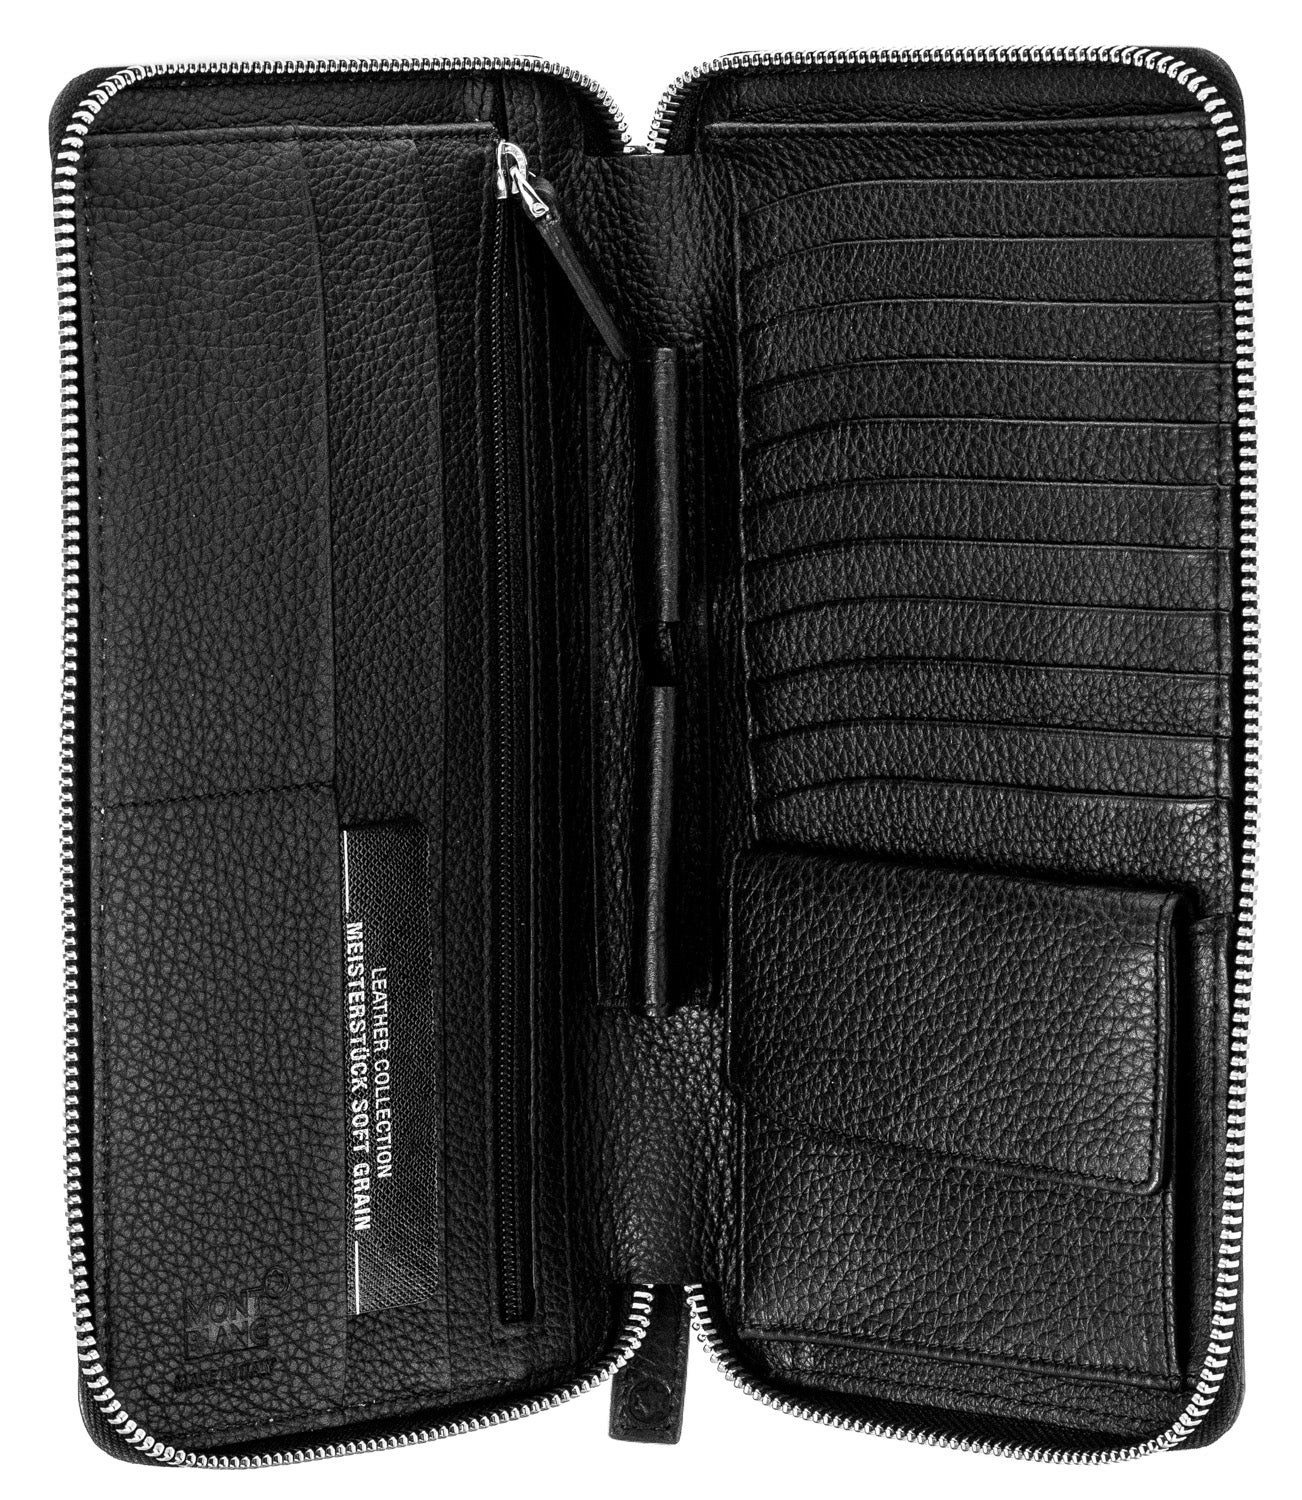 Montblanc Meisterstück 13CC Travel Zipper Black Leather Wallet 113304